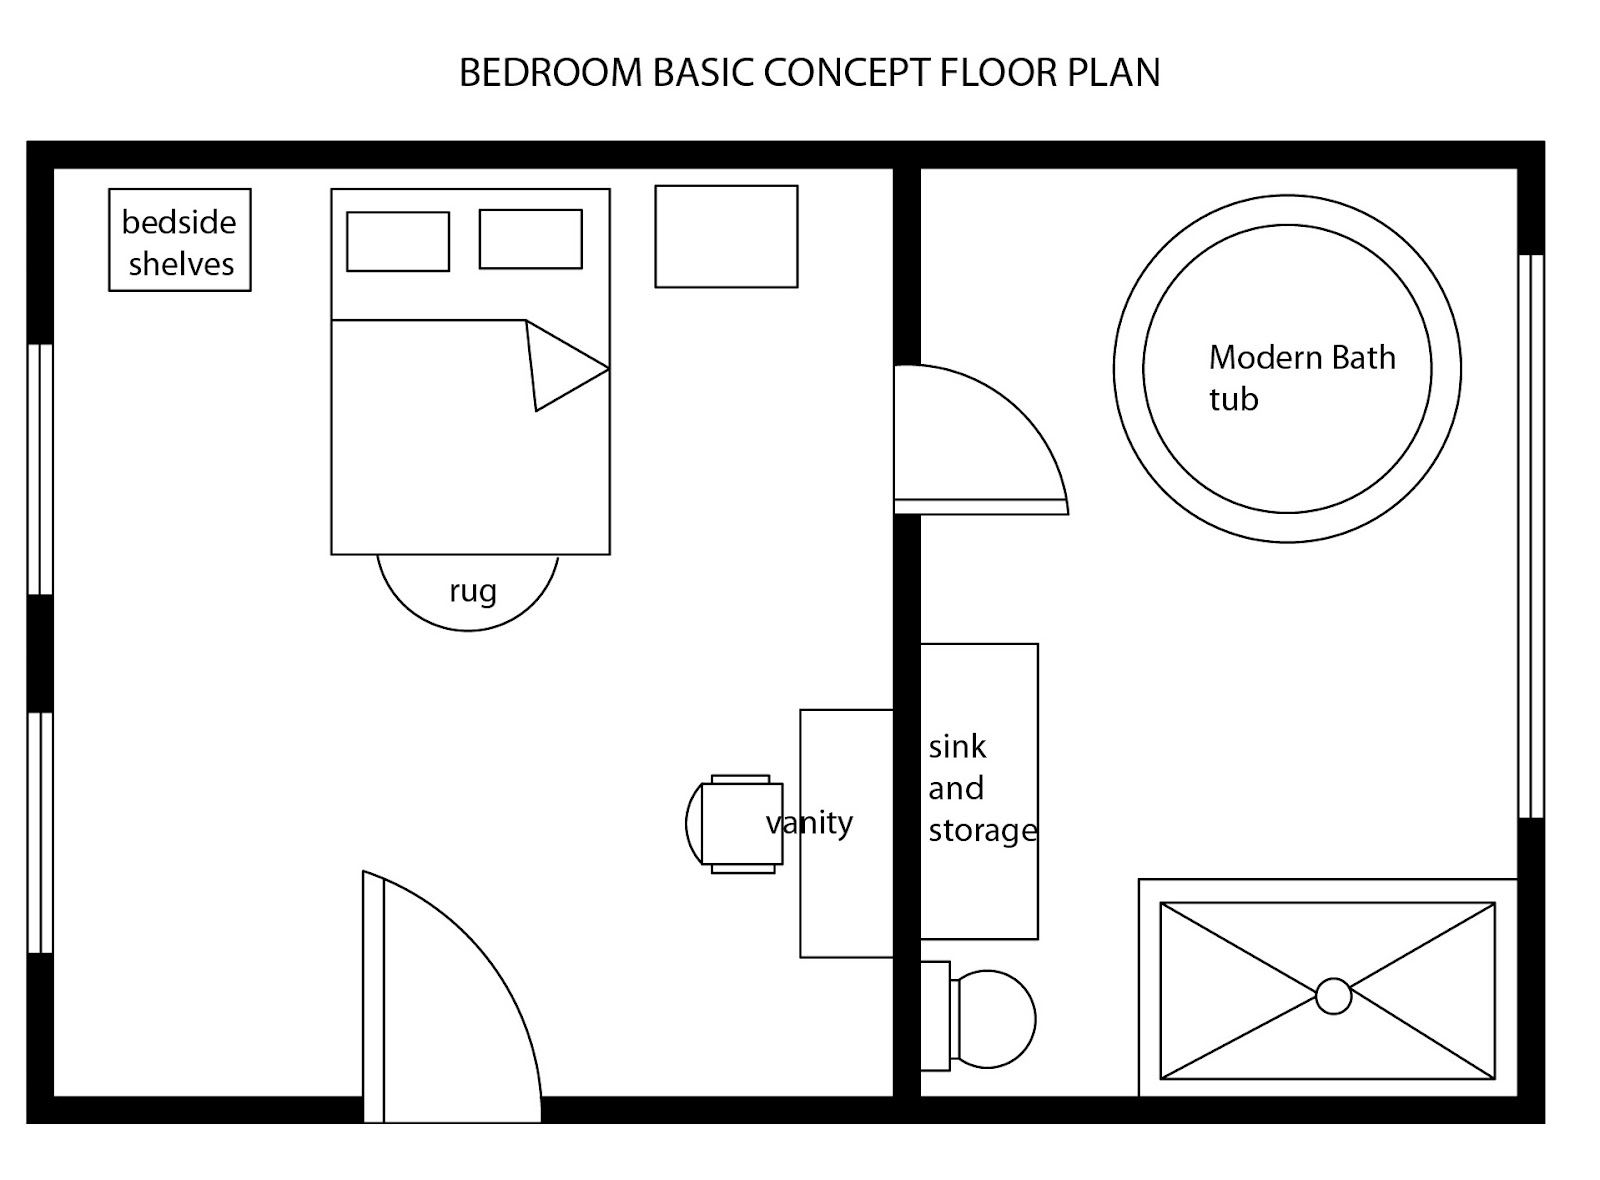 Design Floor Plan For Bathroom Home Decorating